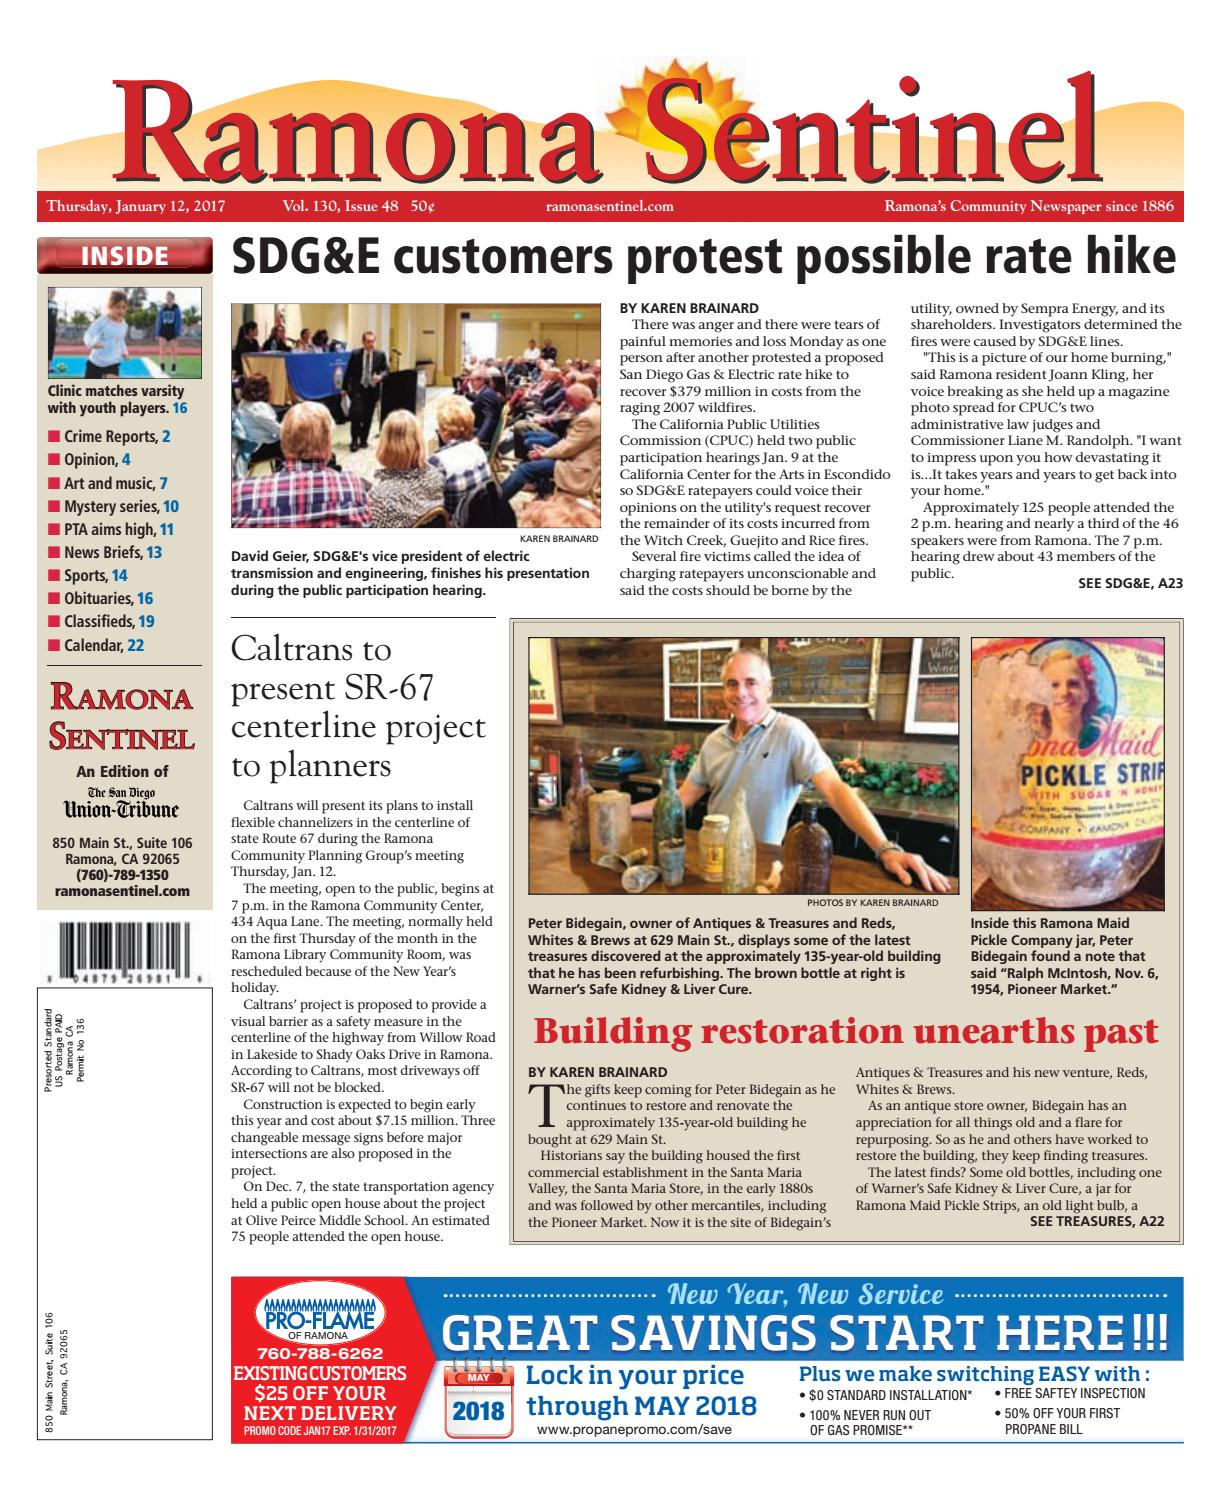 Ramona sentinel 01 12 17 by MainStreet Media - issuu